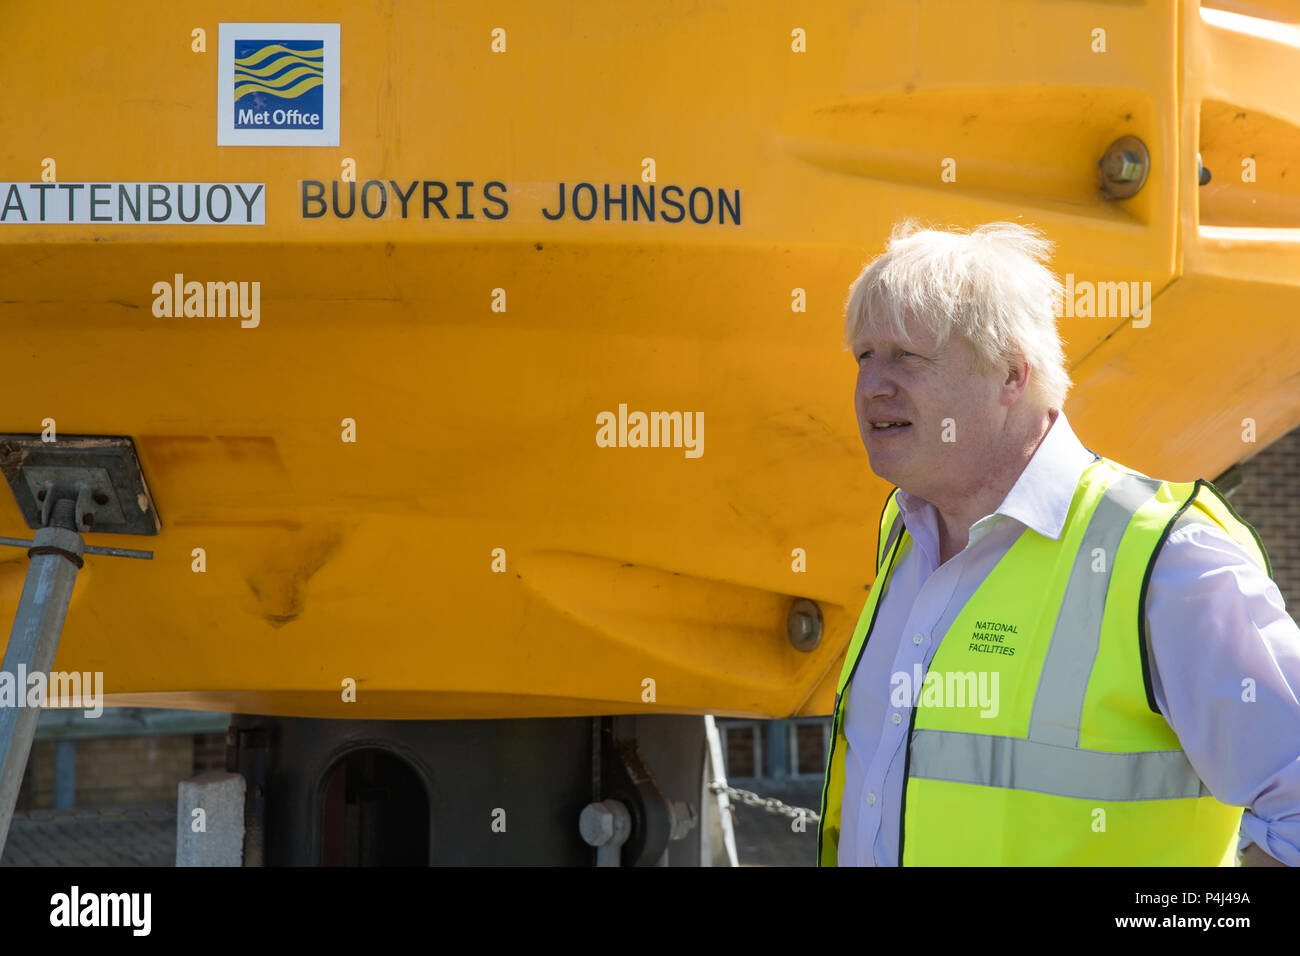 Foreign Secretary Boris Johnson Stands With A Met Office Weather Buoy Named Bouyris Johnson During His Visit To The National Oceanography Centre In Southampton Ahead Of The Forthcoming Fco Oceans Strategy Stock